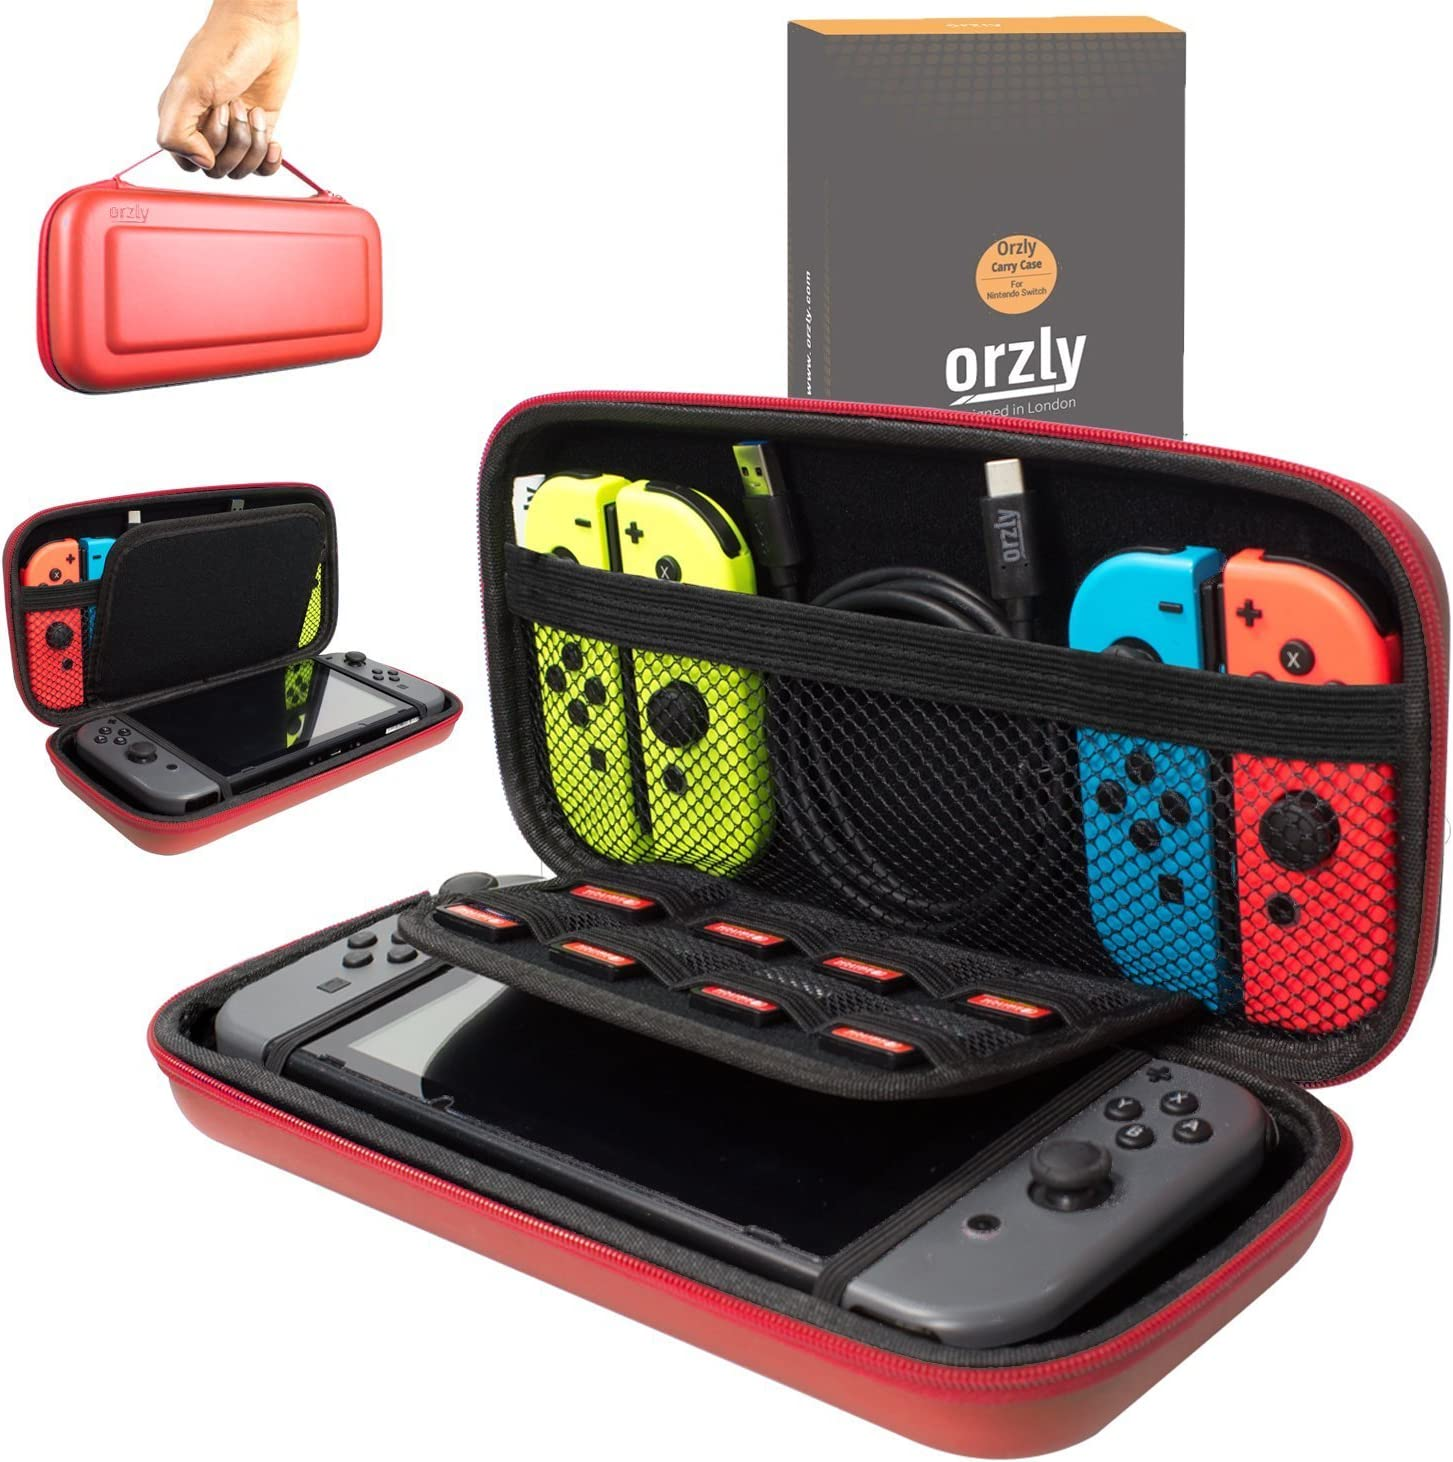 Orzly Carry Case Compatible With Nintendo Switch   Red Protective Hard Portable Travel Carry Case Shell Pouch For Nintendo Switch Console & Accessories by Orzly